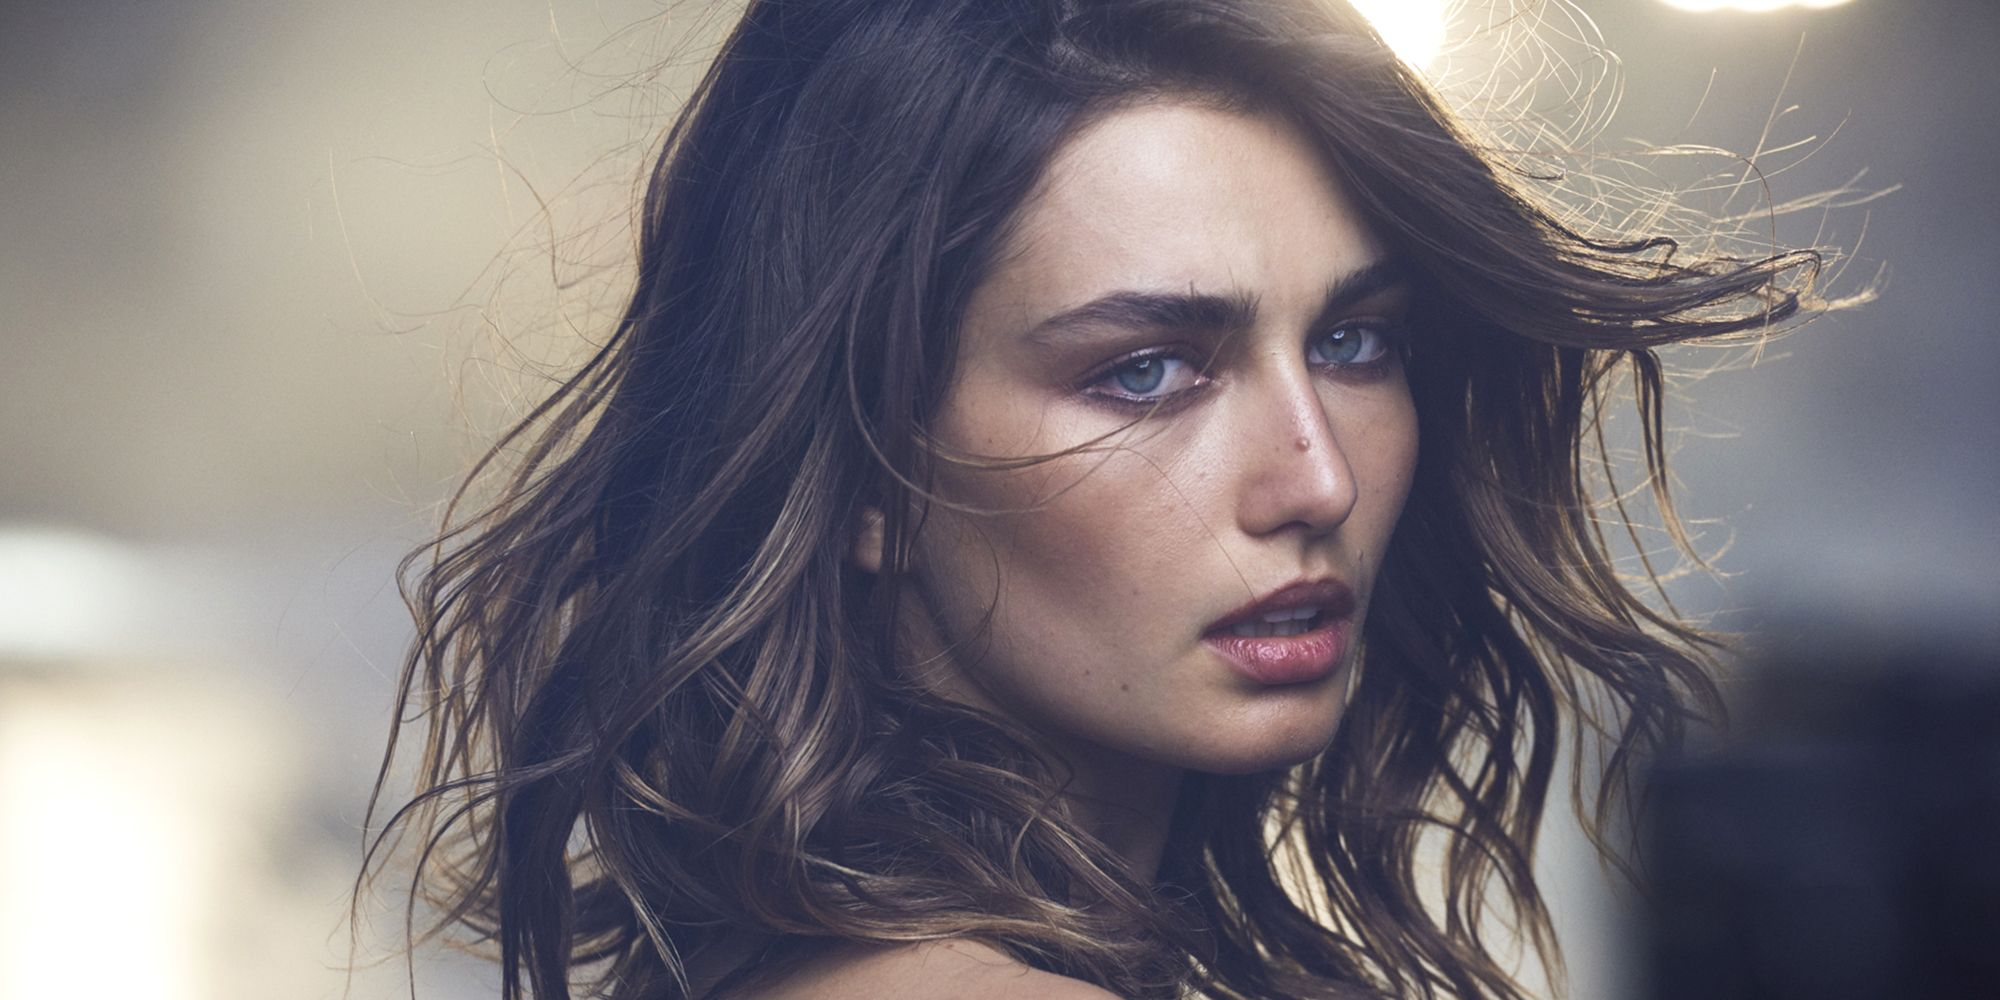 Andreea Diaconu ROU nude (66 pictures) Pussy, Facebook, braless